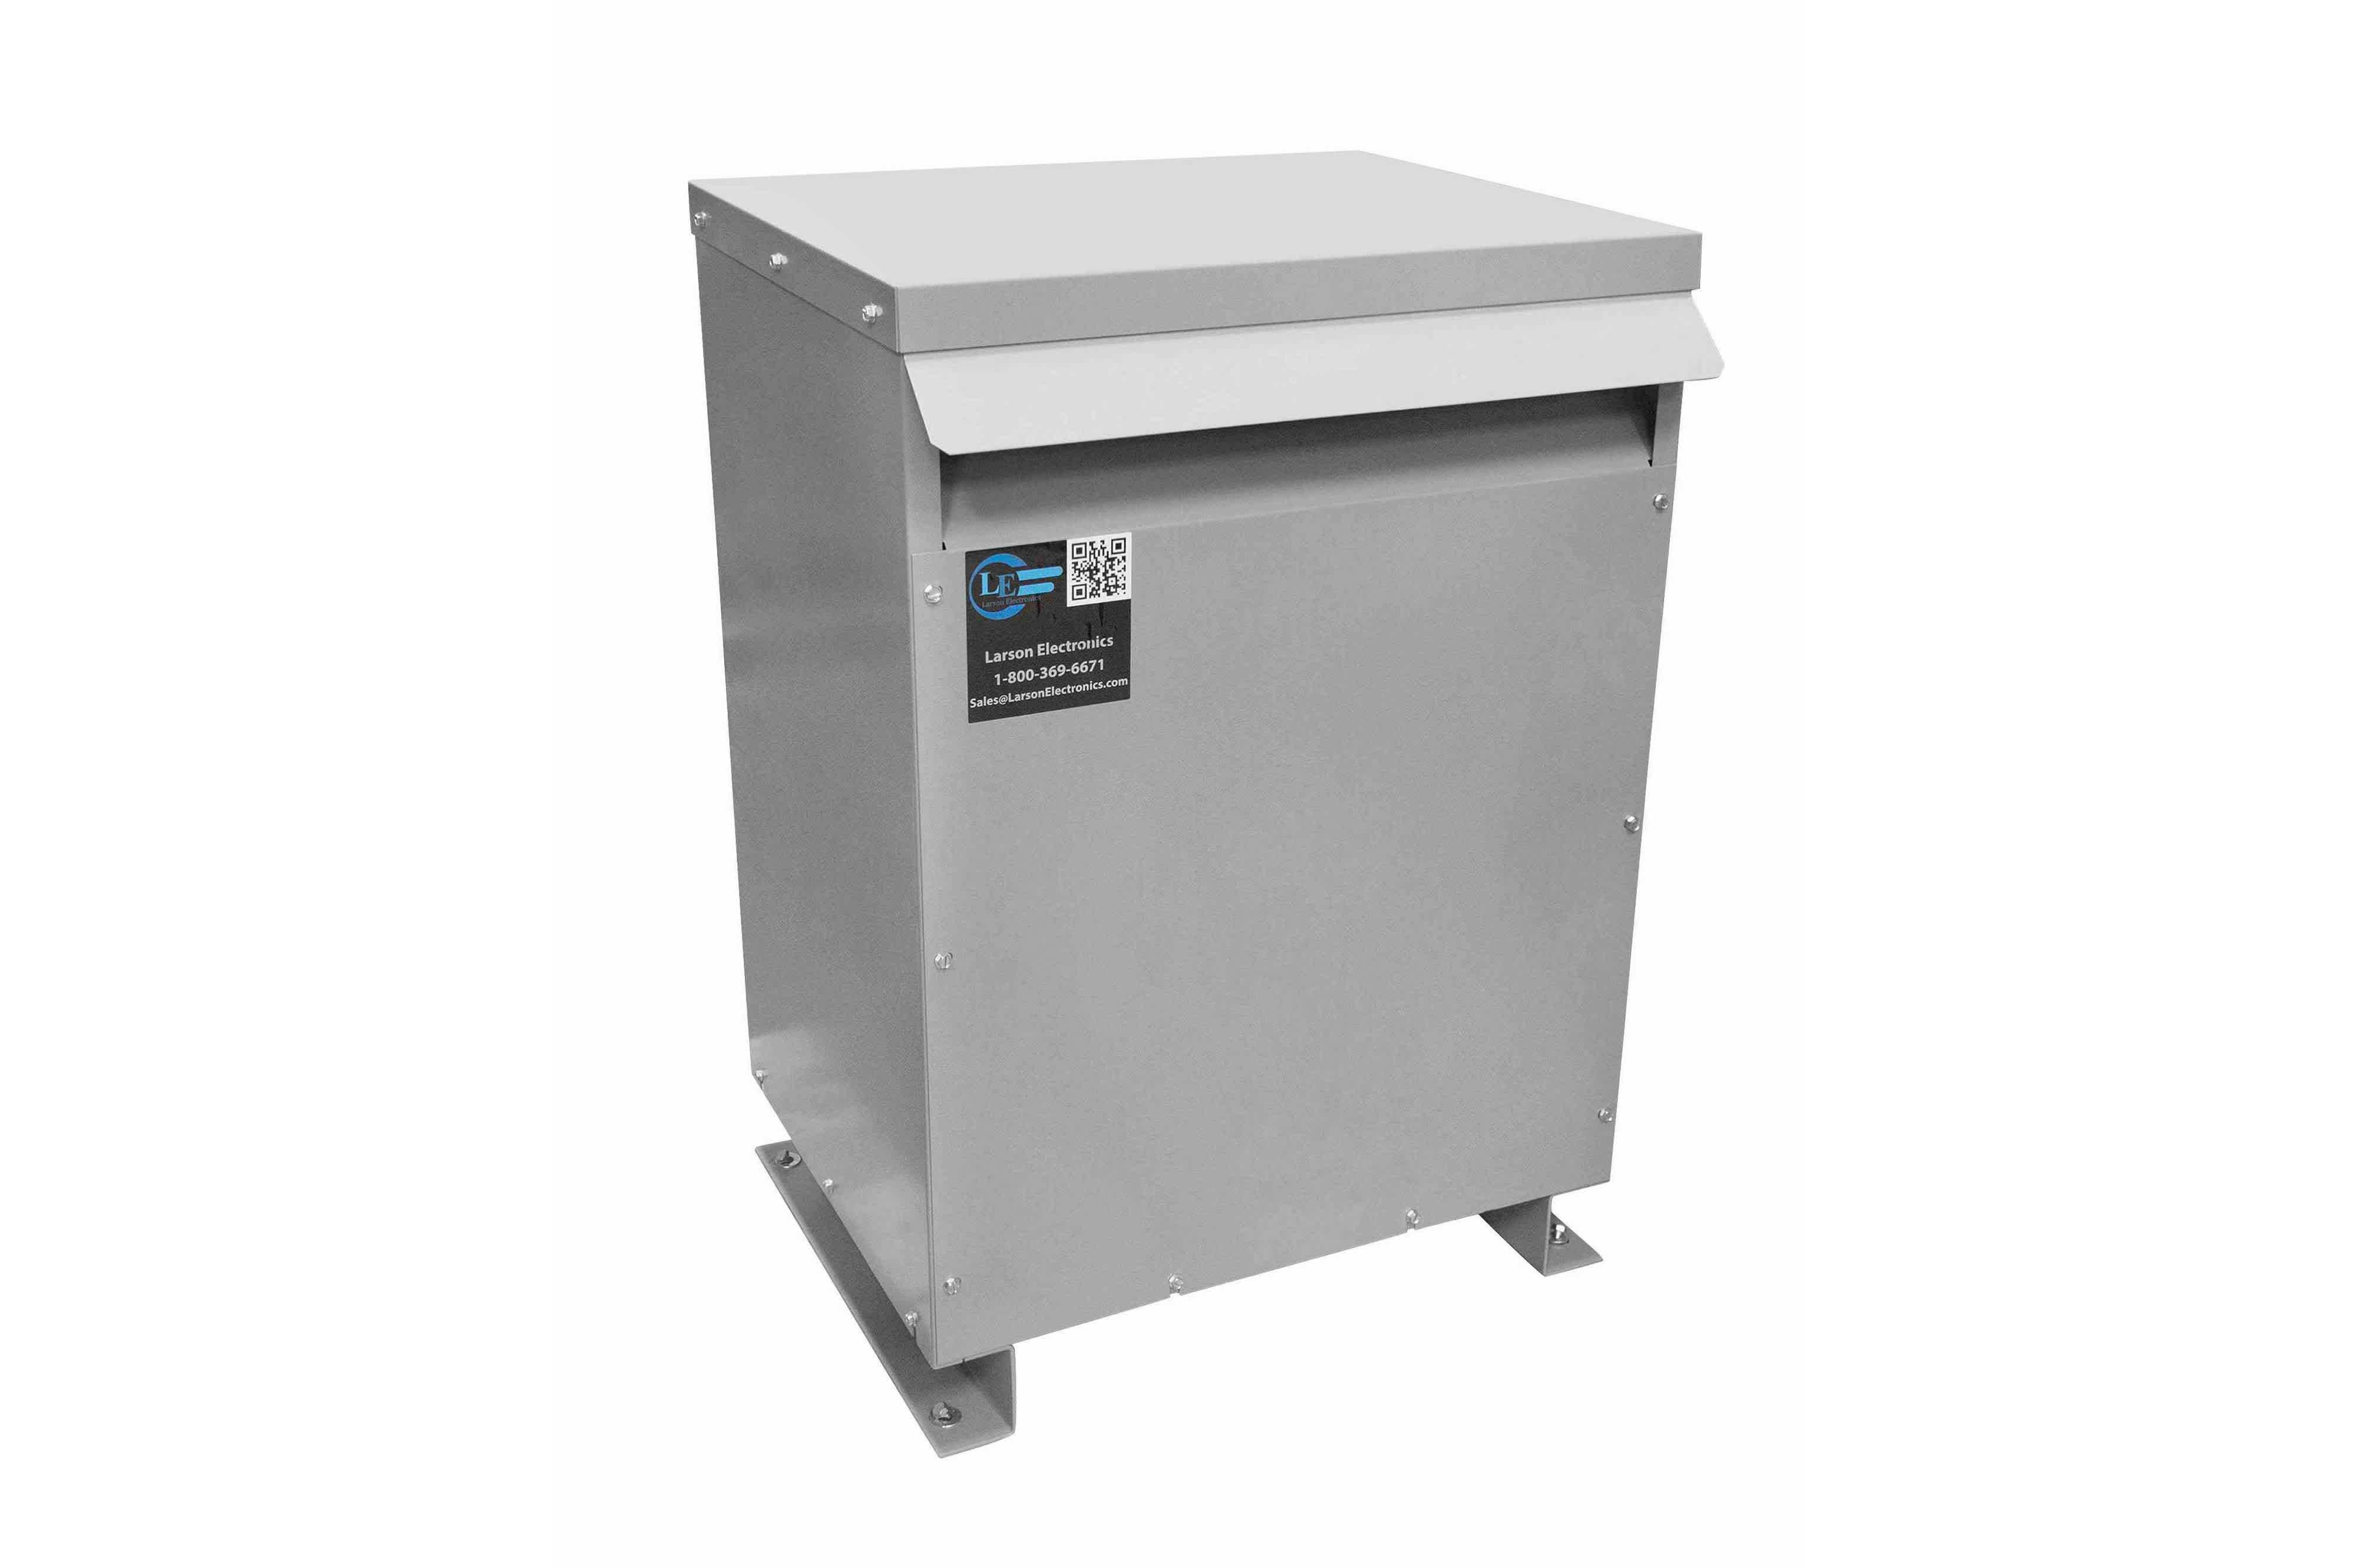 137.5 kVA 3PH Isolation Transformer, 230V Delta Primary, 208V Delta Secondary, N3R, Ventilated, 60 Hz